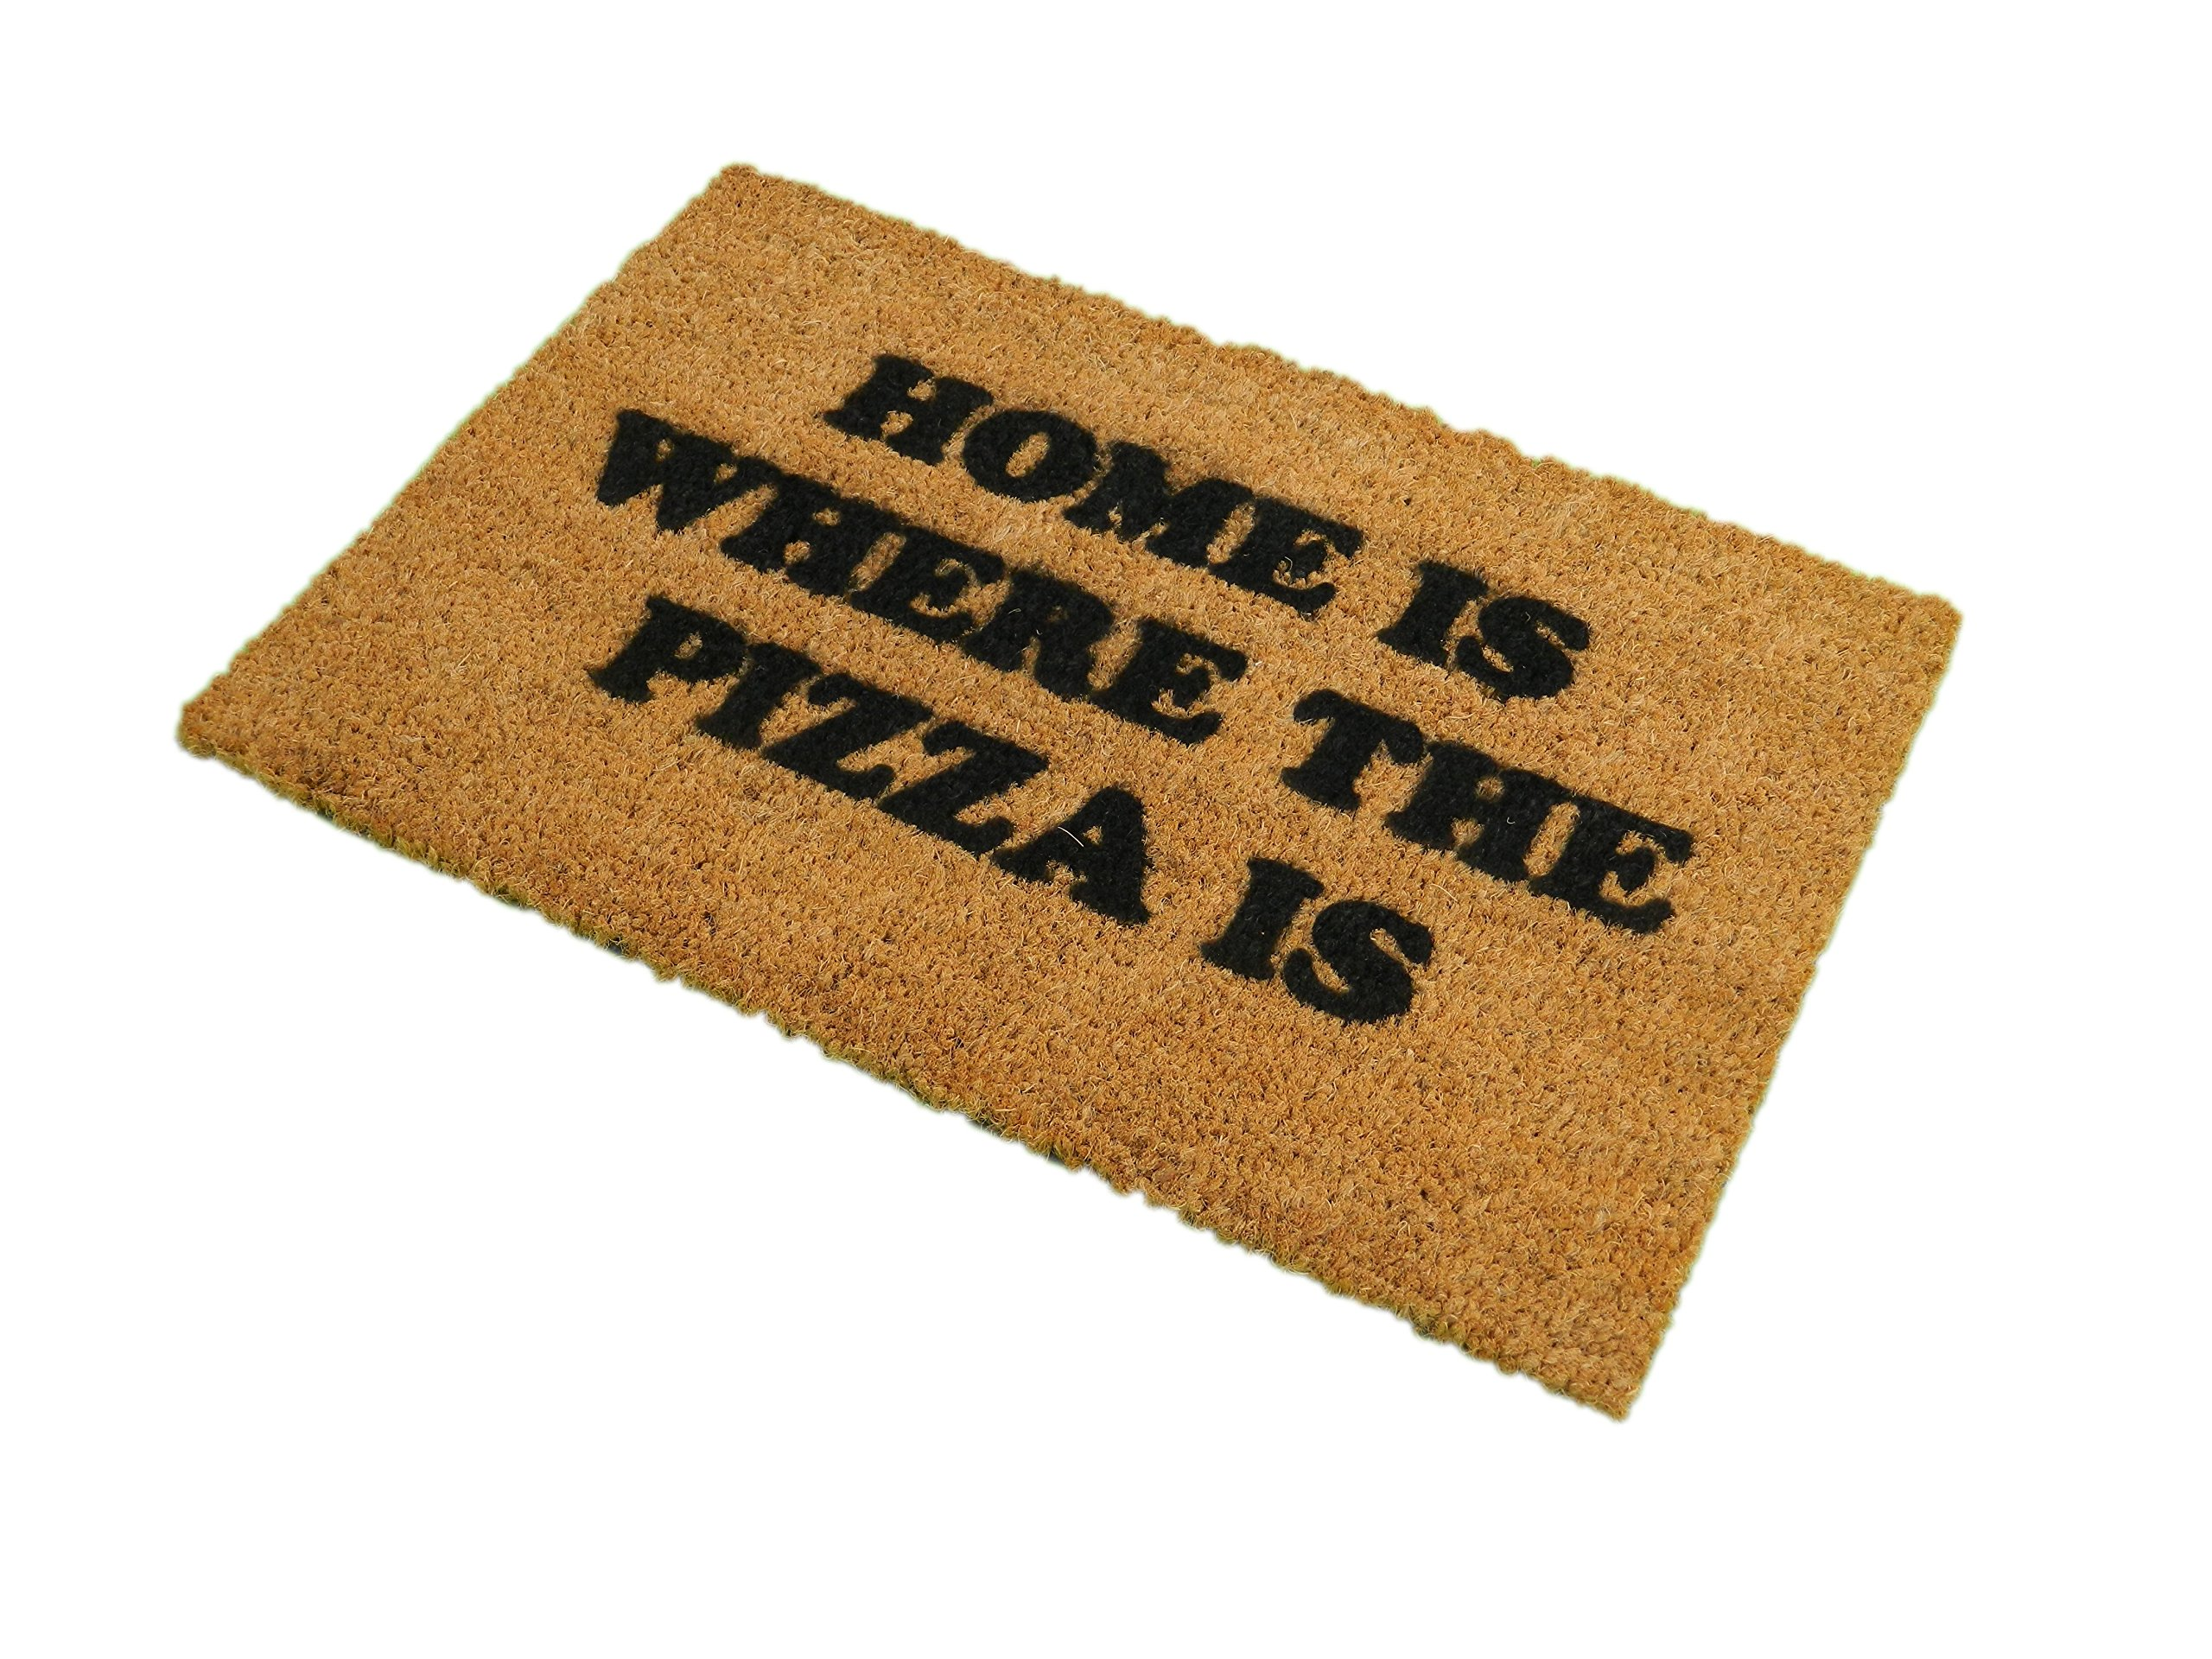 CKB Ltd Home Is Where The Pizza Novelty Doormat Unique Doormats Front/Back Door Mats Made With A Non-Slip Pvc Backing - Natural Coir - Indoor & Outdoor by CKB Ltd